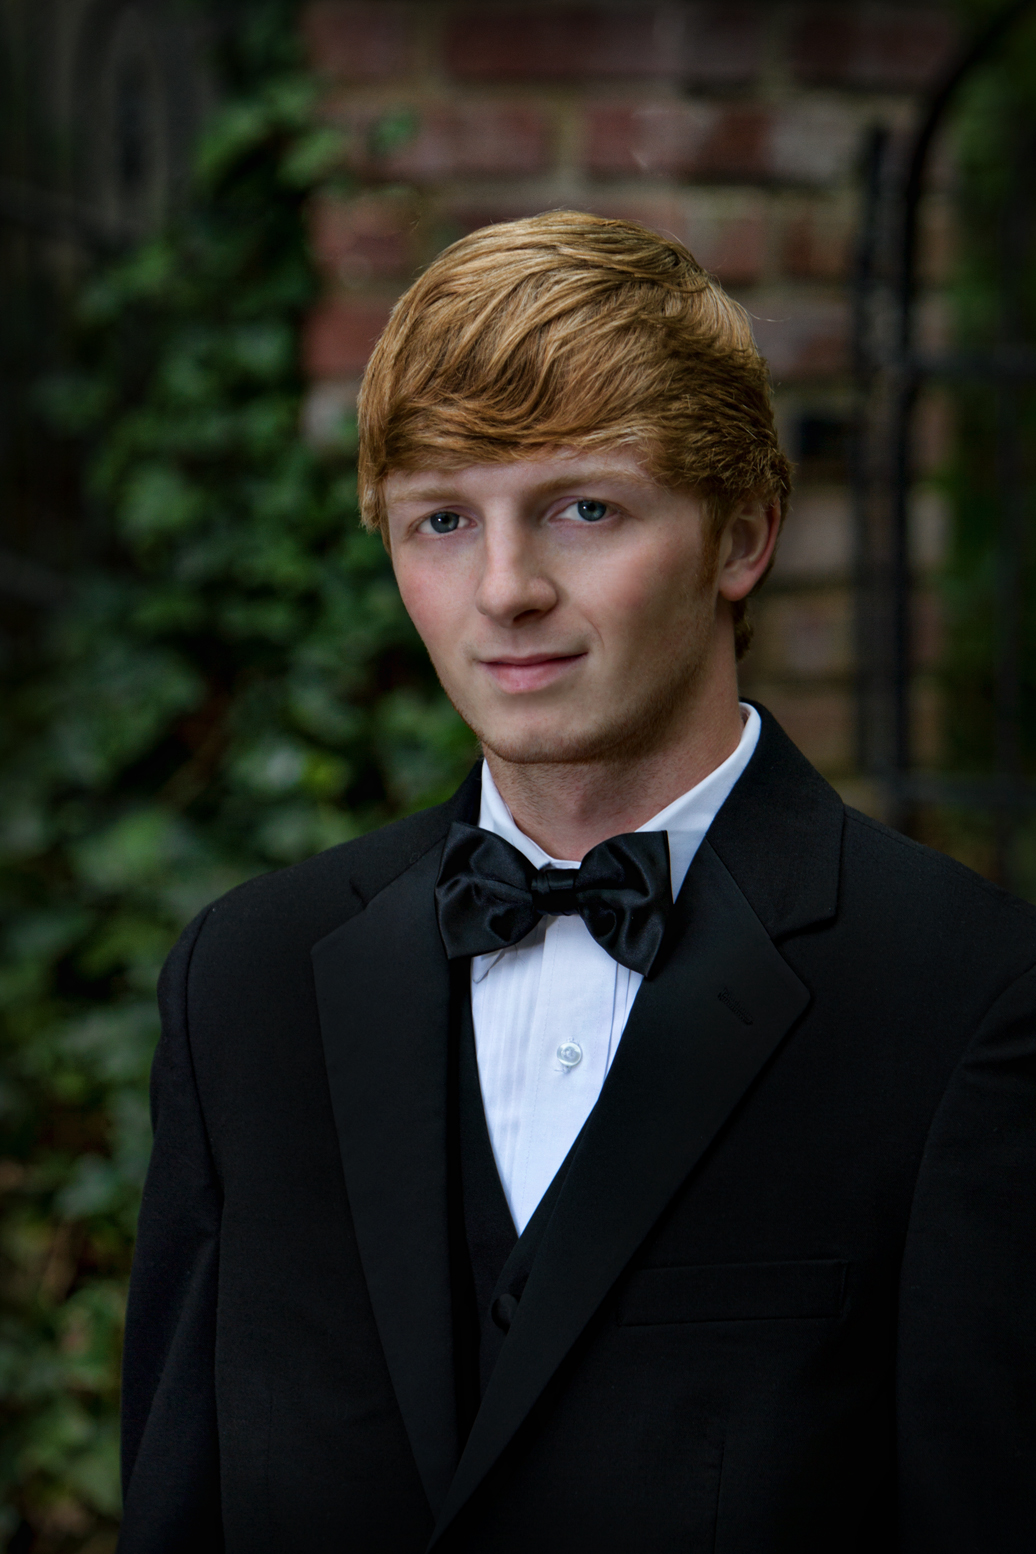 Senior Boys Poses http://claytonhayes.blogspot.com/2011/04/senior-boys-tux-poses-outdoors.html